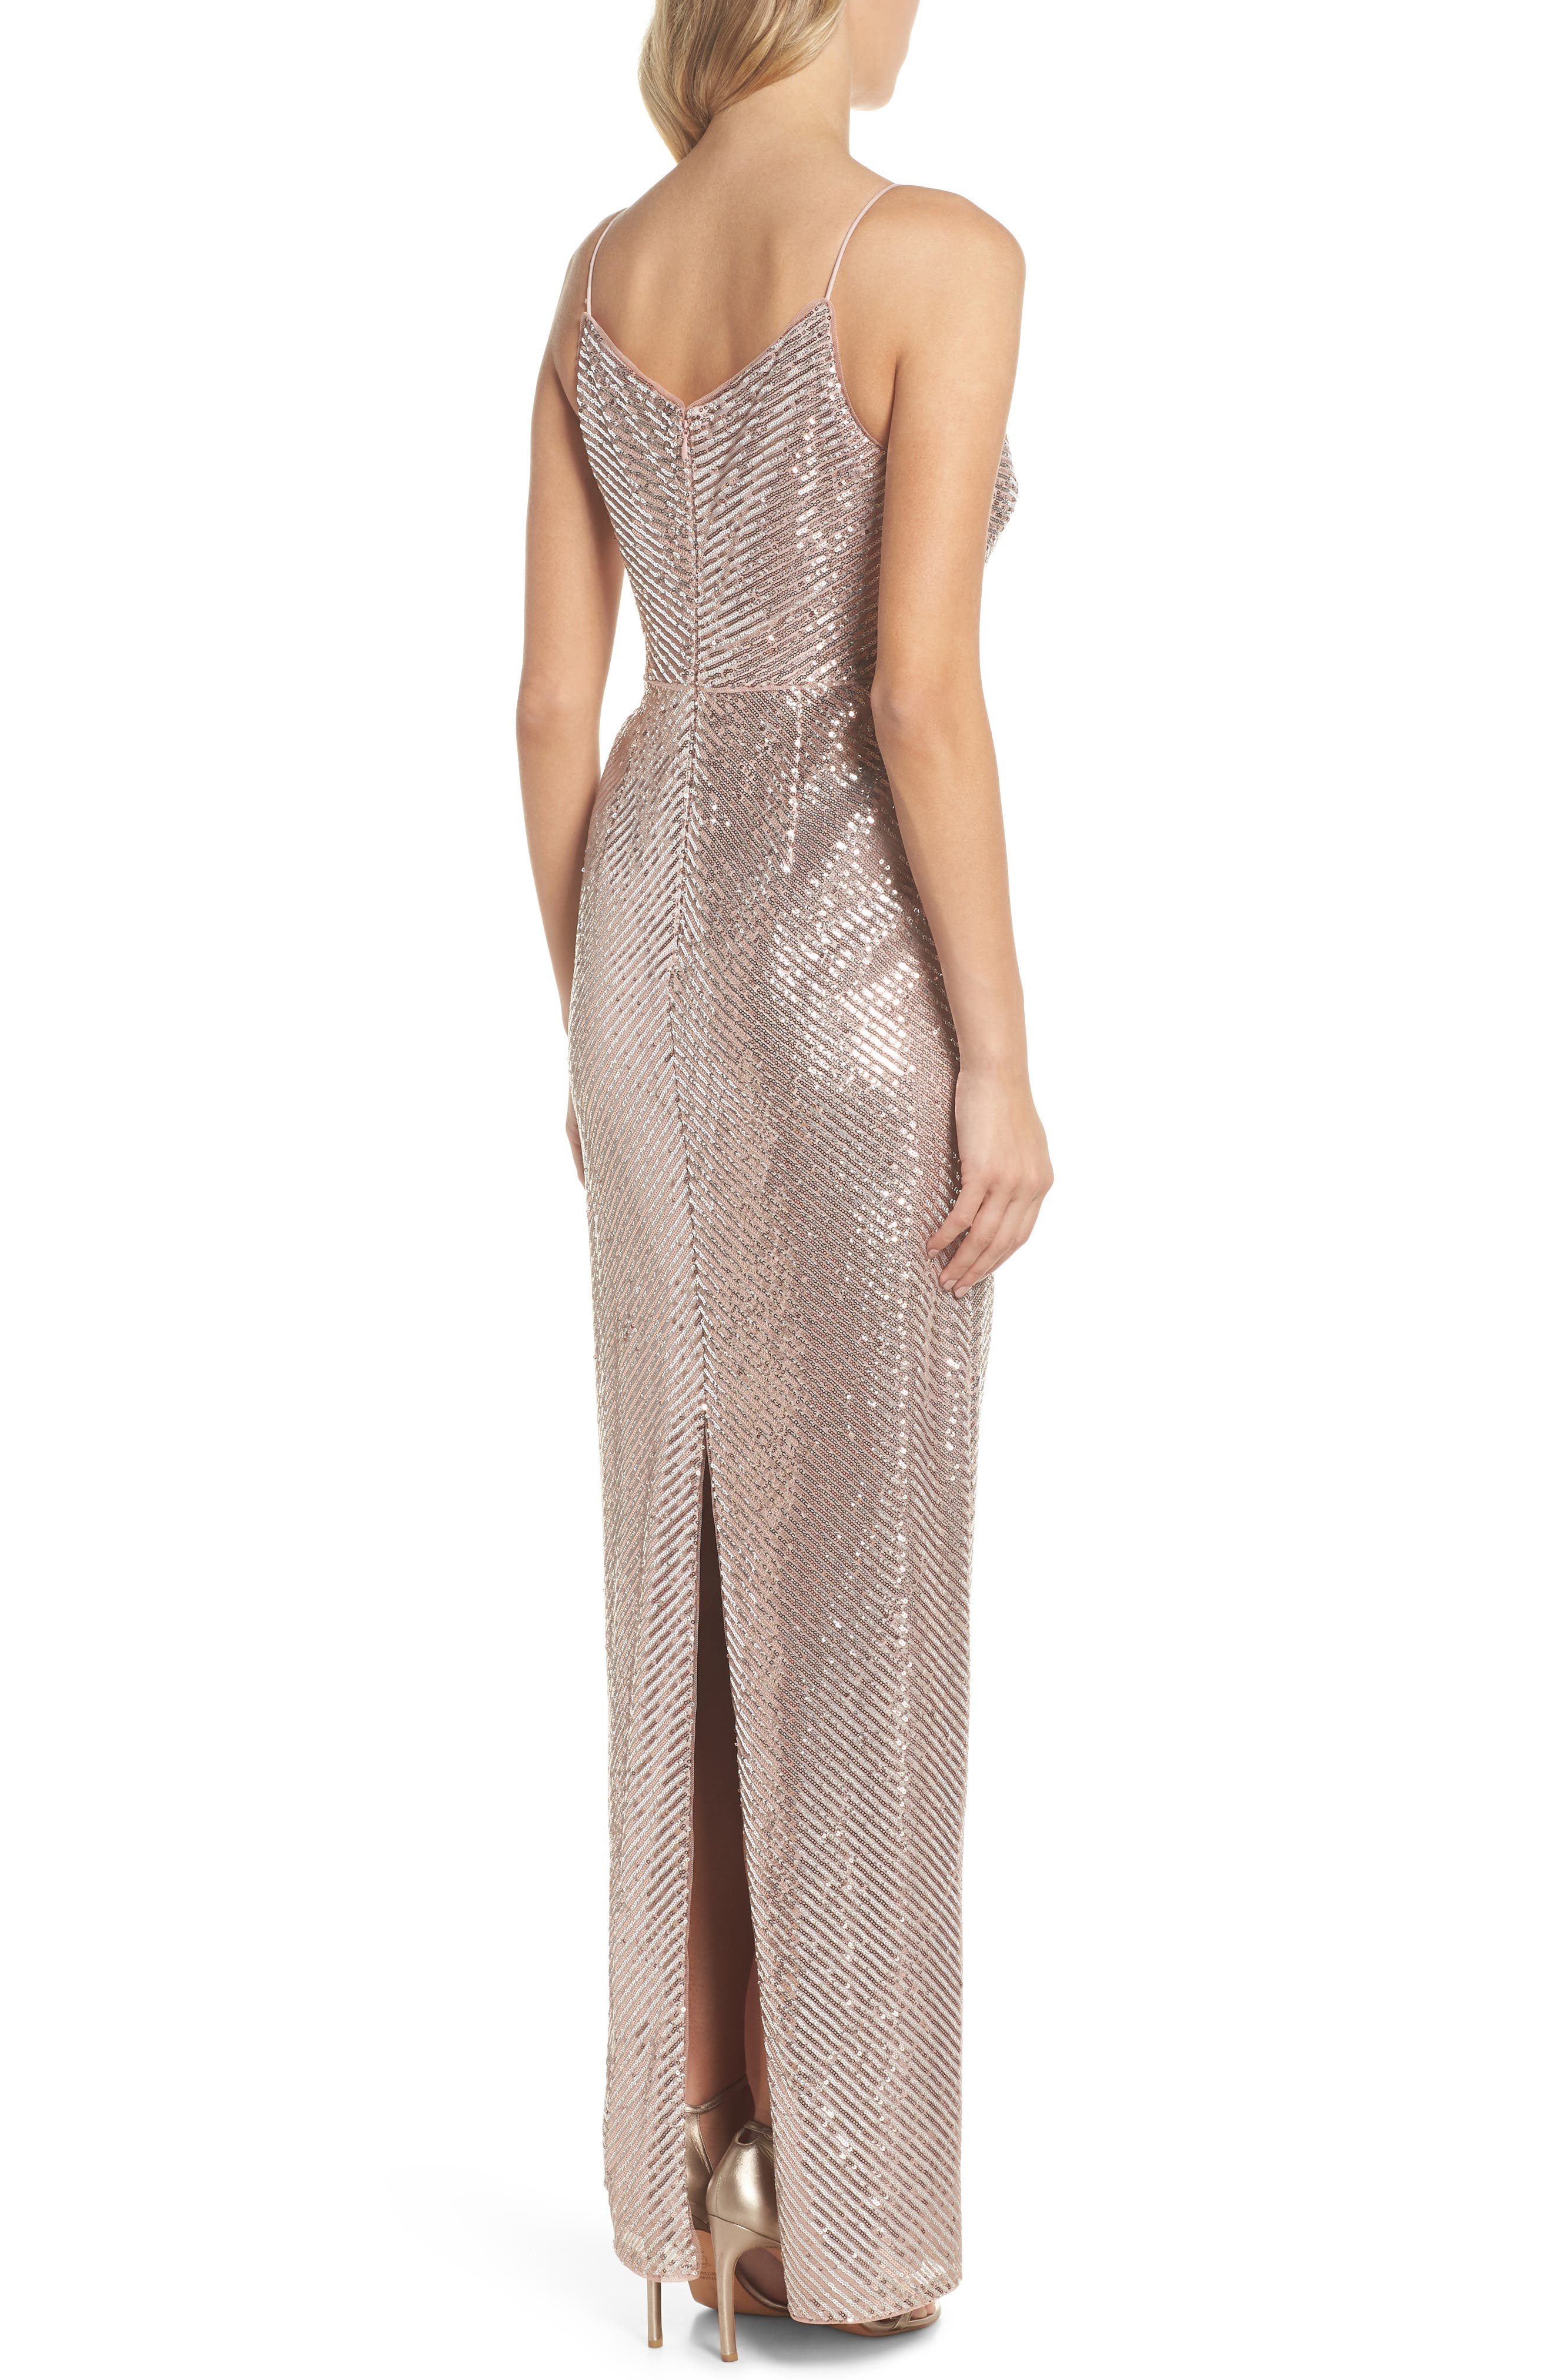 ADRIANNA PAPELL,                             Stripe Sequin Gown,                             Alternate thumbnail 2, color,                             680